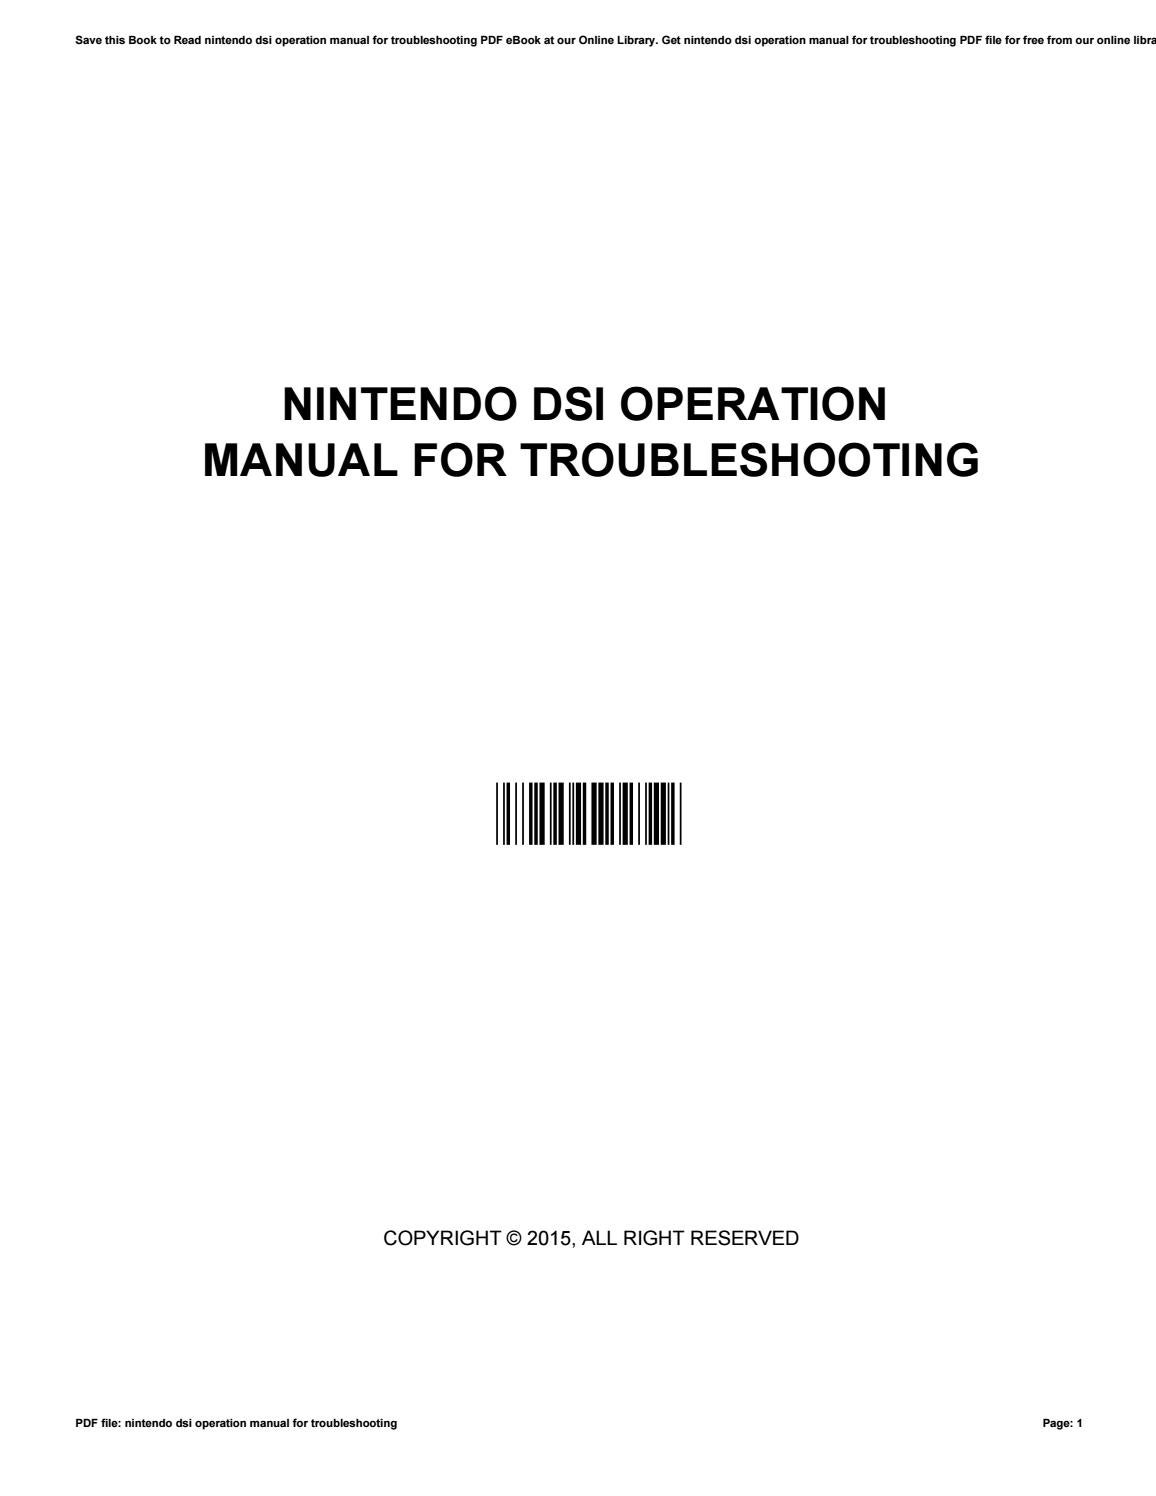 Nintendo dsi operation manual for troubleshooting by TyroneMontgomery4142 -  issuu